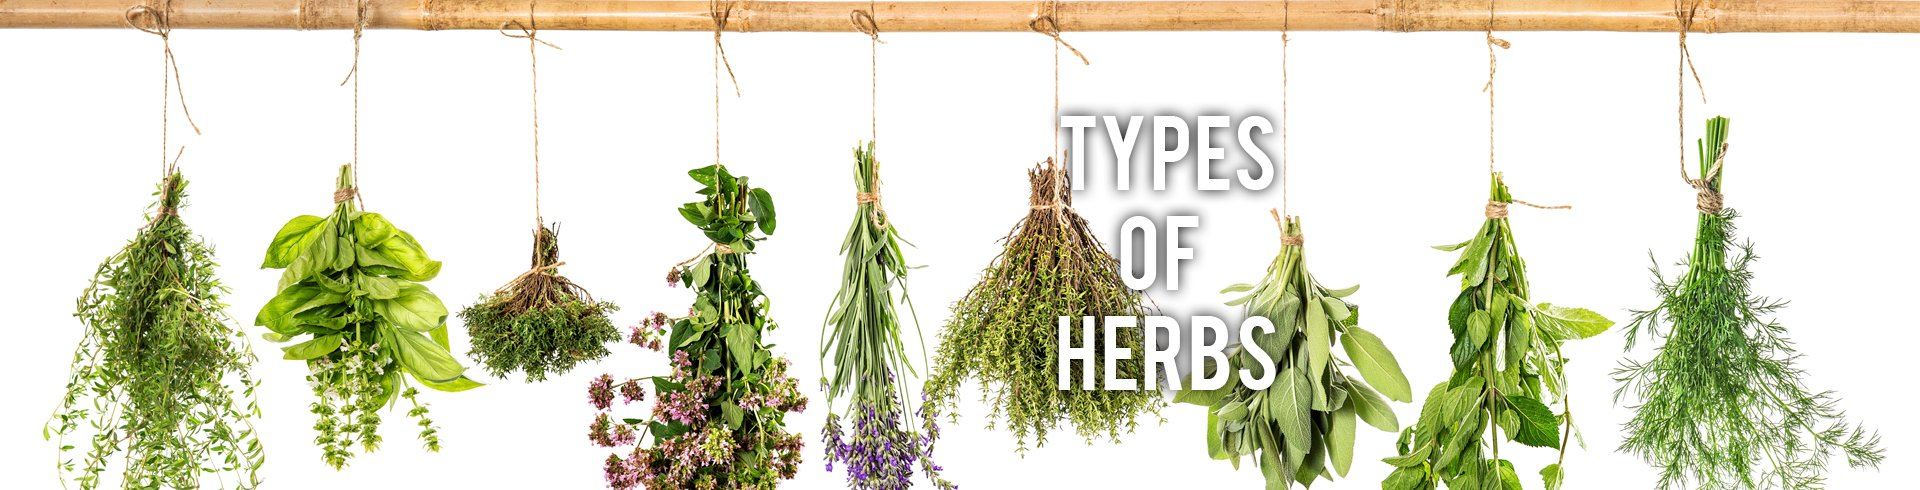 Types of Herbs RC Willey Blog